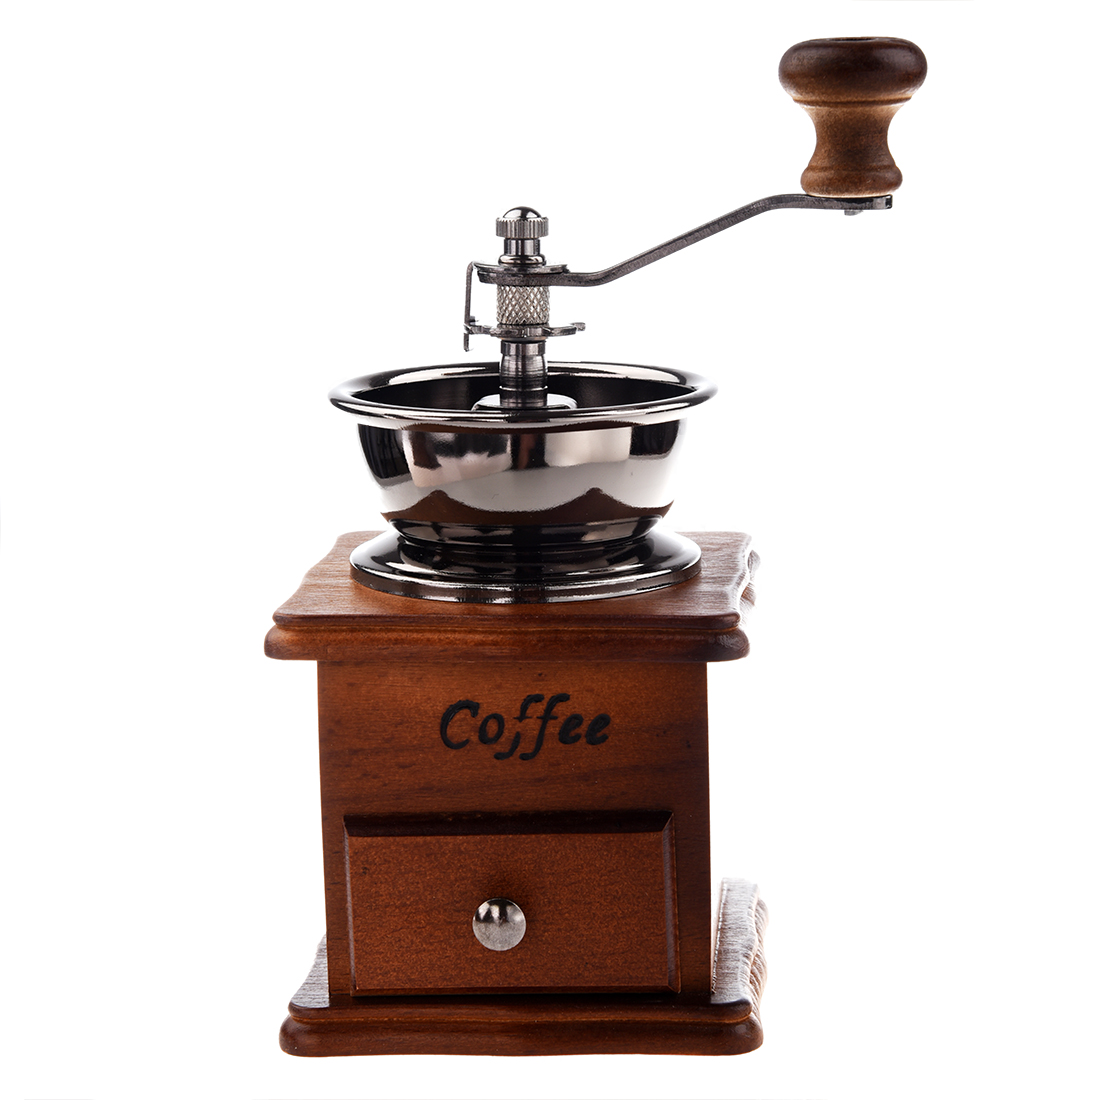 Classical Wooden Manual Coffee Grinder Stainless Steel Retro Coffee Spice Mini Burr Mill With High-quality Ceramic Millstone manual coffee bean grinder retro wooden design mill maker grinders retro coffee spice mini burr mill with high quality ceramic m